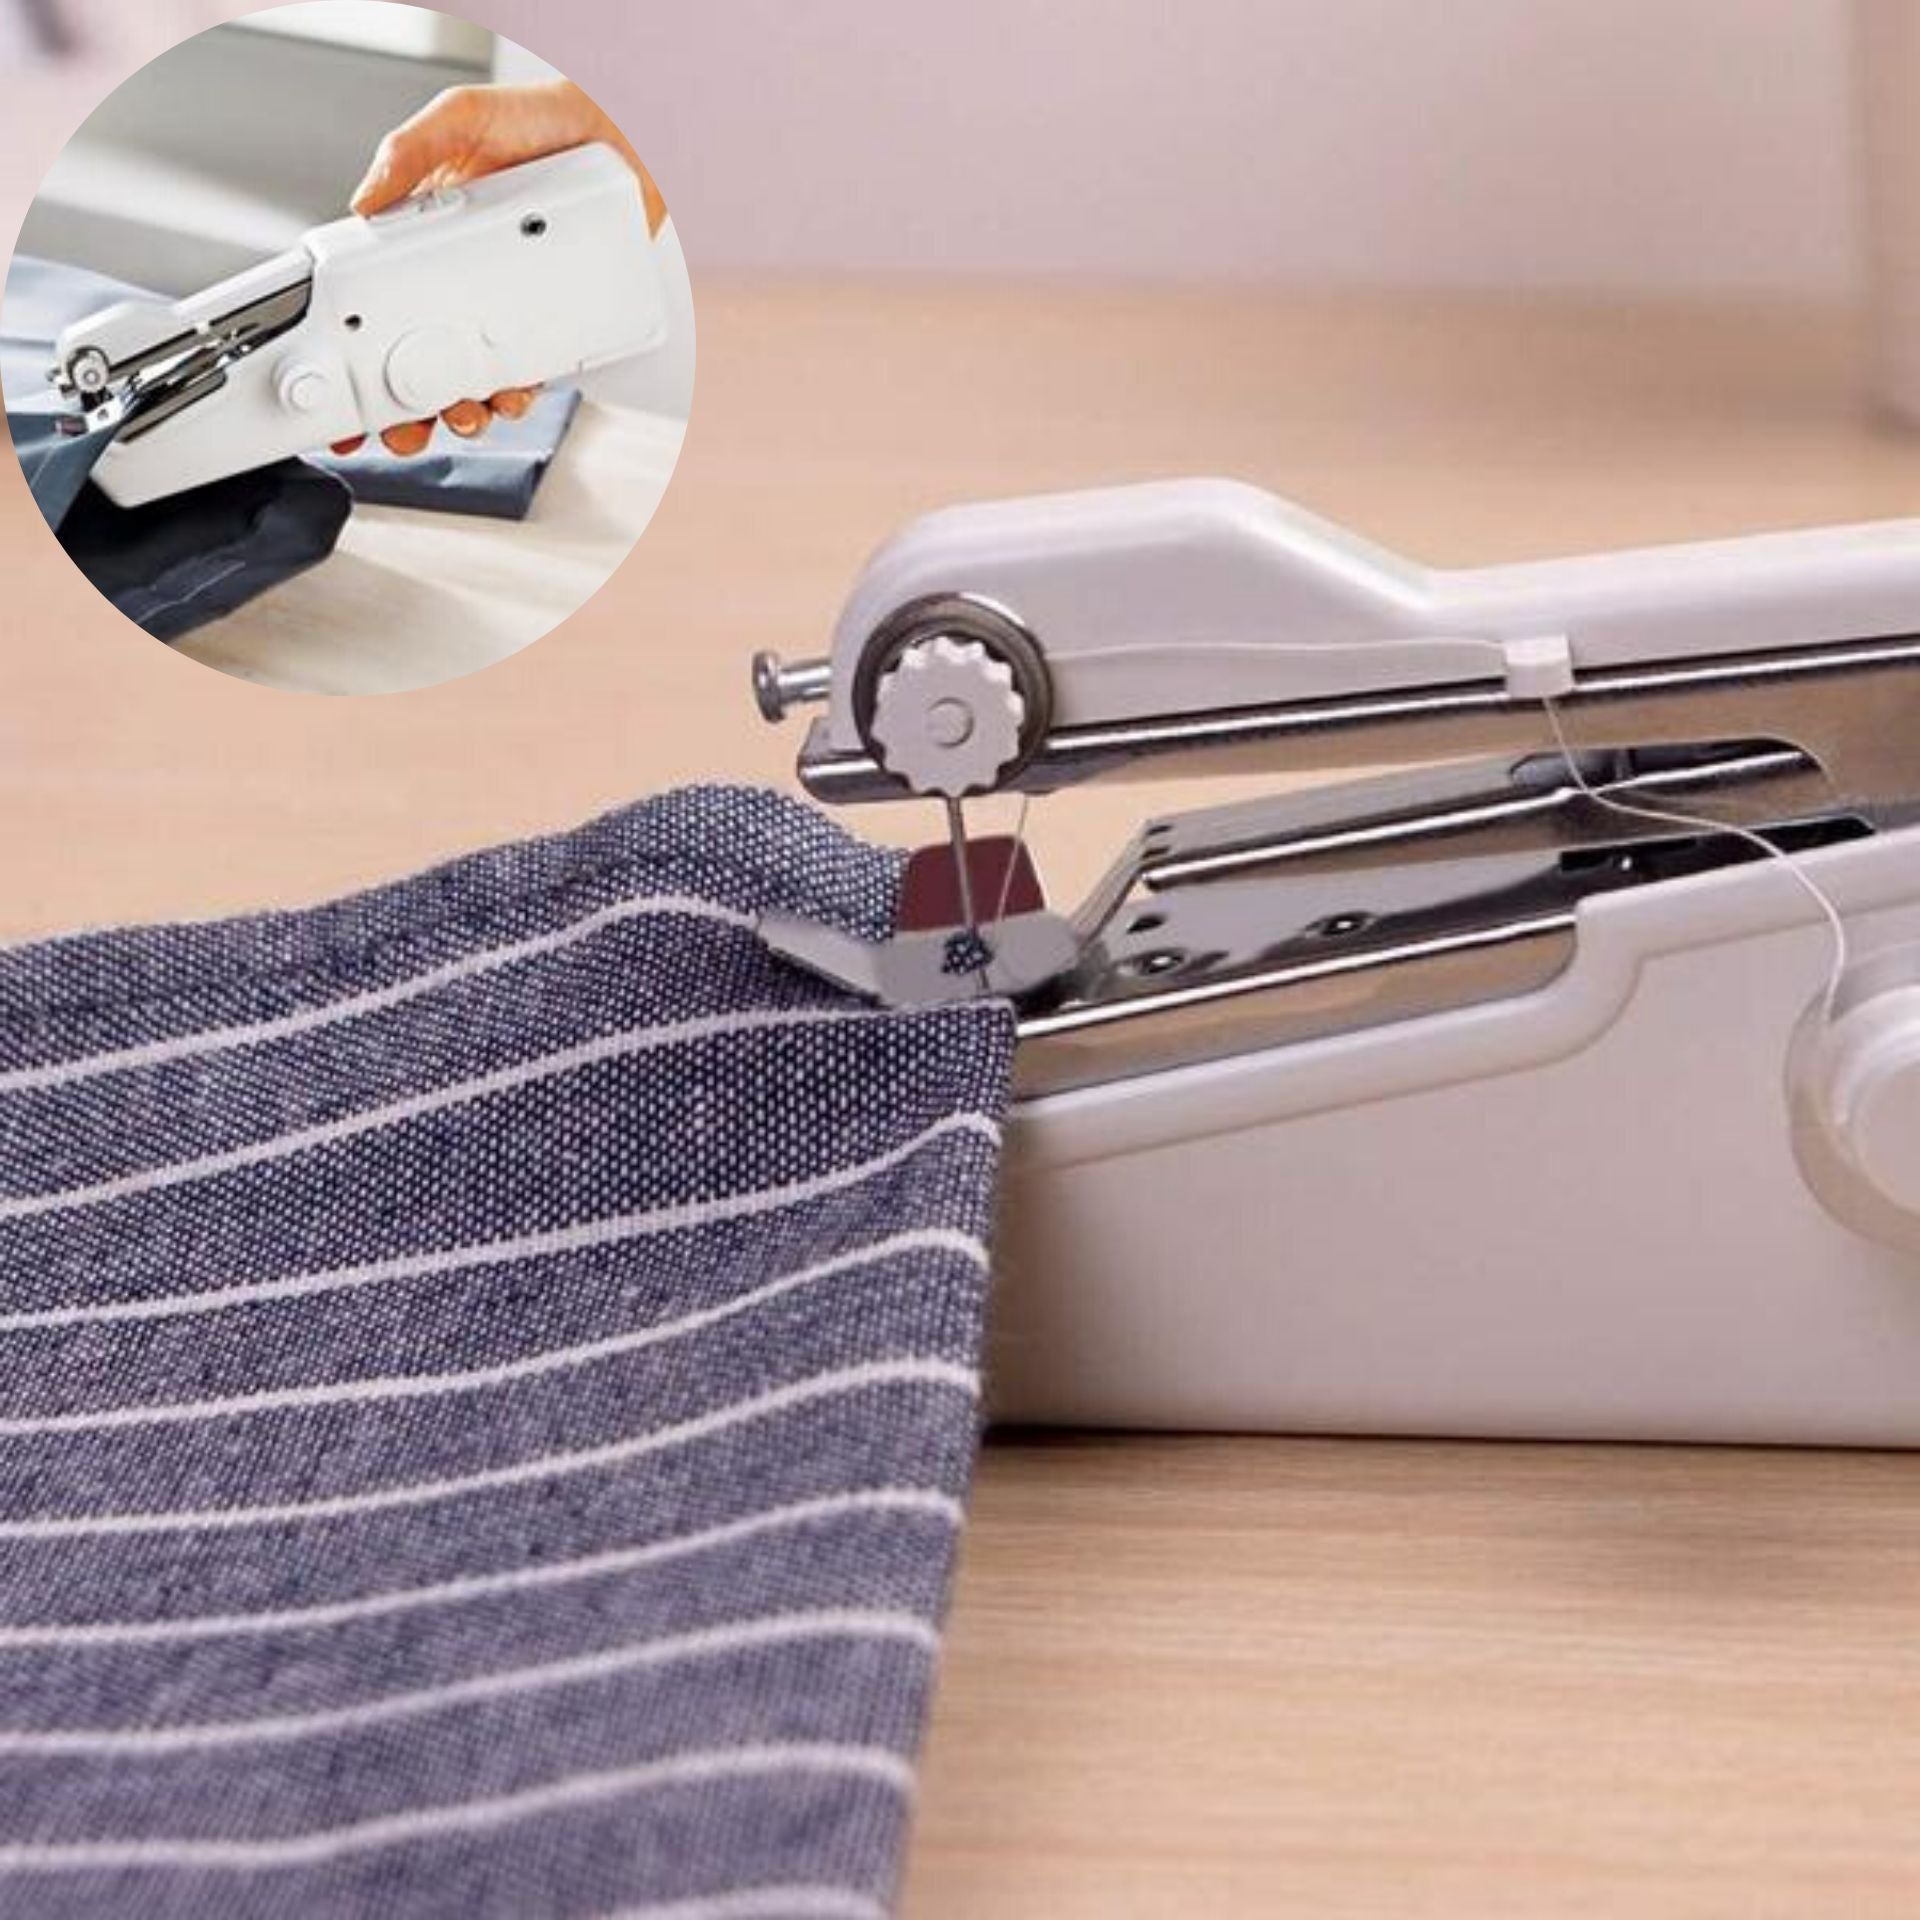 Portable Handheld Sewing Machine Cordless Portable Electric Stitching Device - Morealis